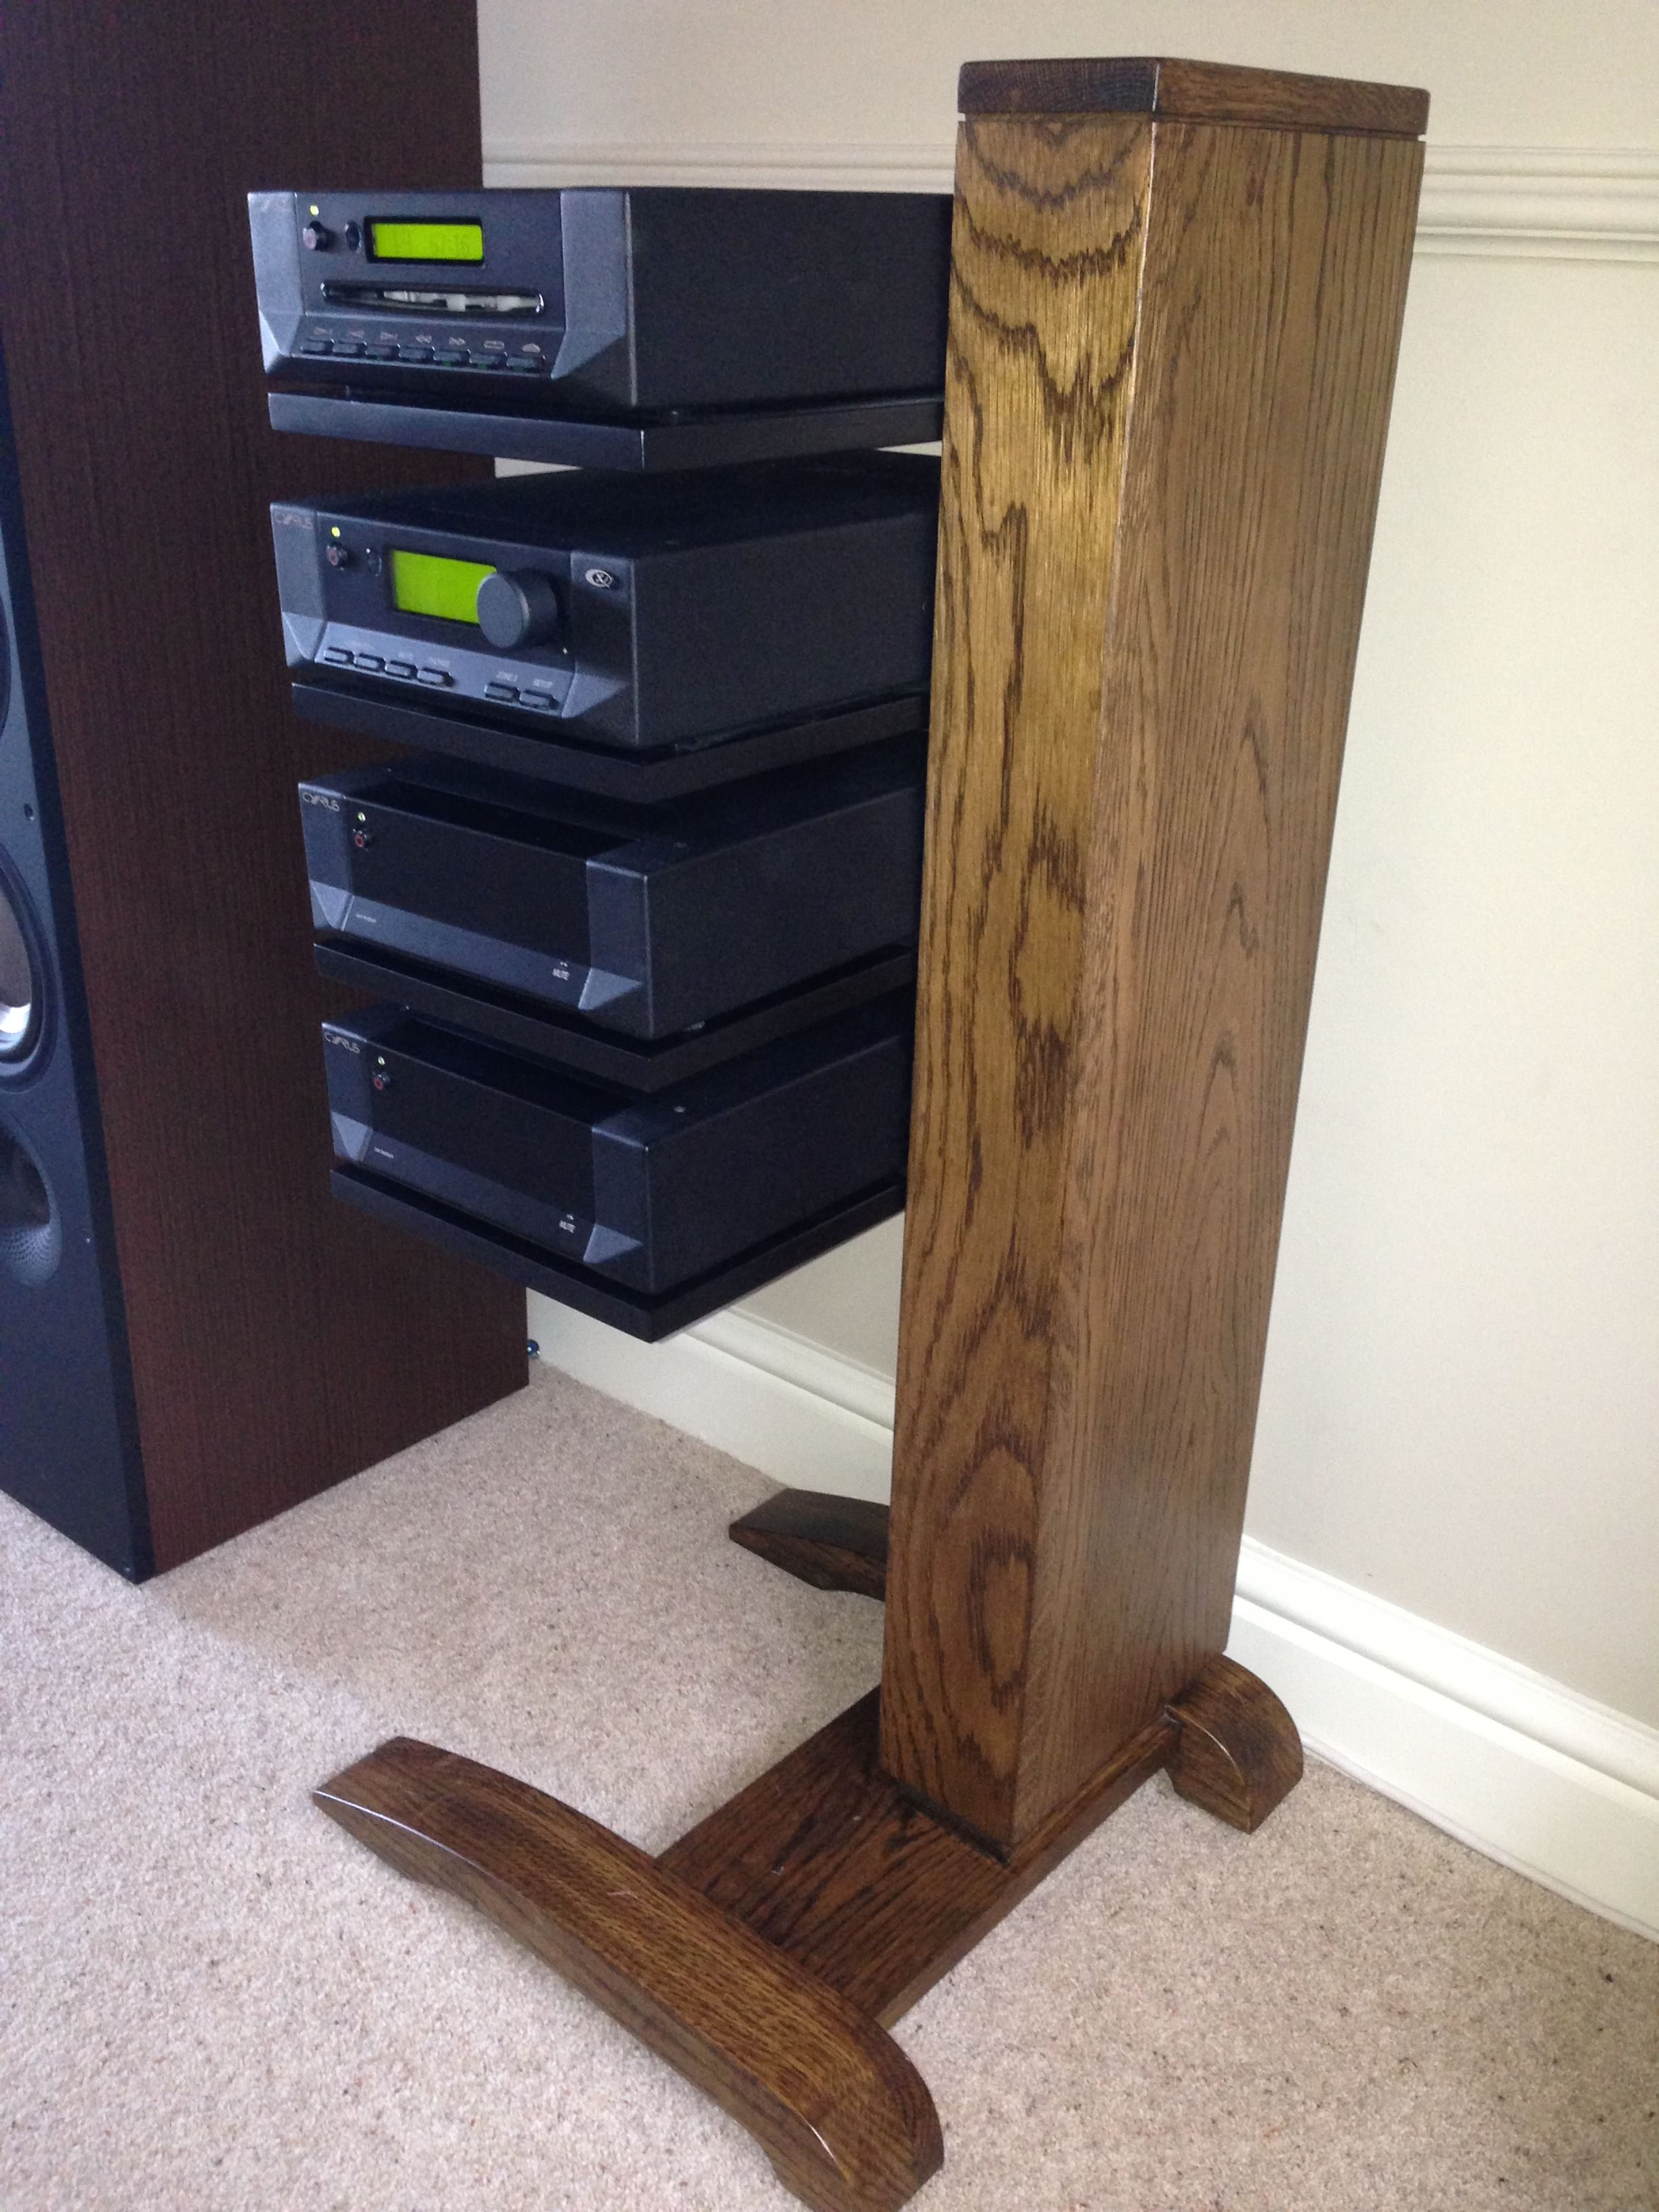 Hifi Rack Design Solid Oak Hi Fi Stand With Cantilever Shelves Audio Equipment In